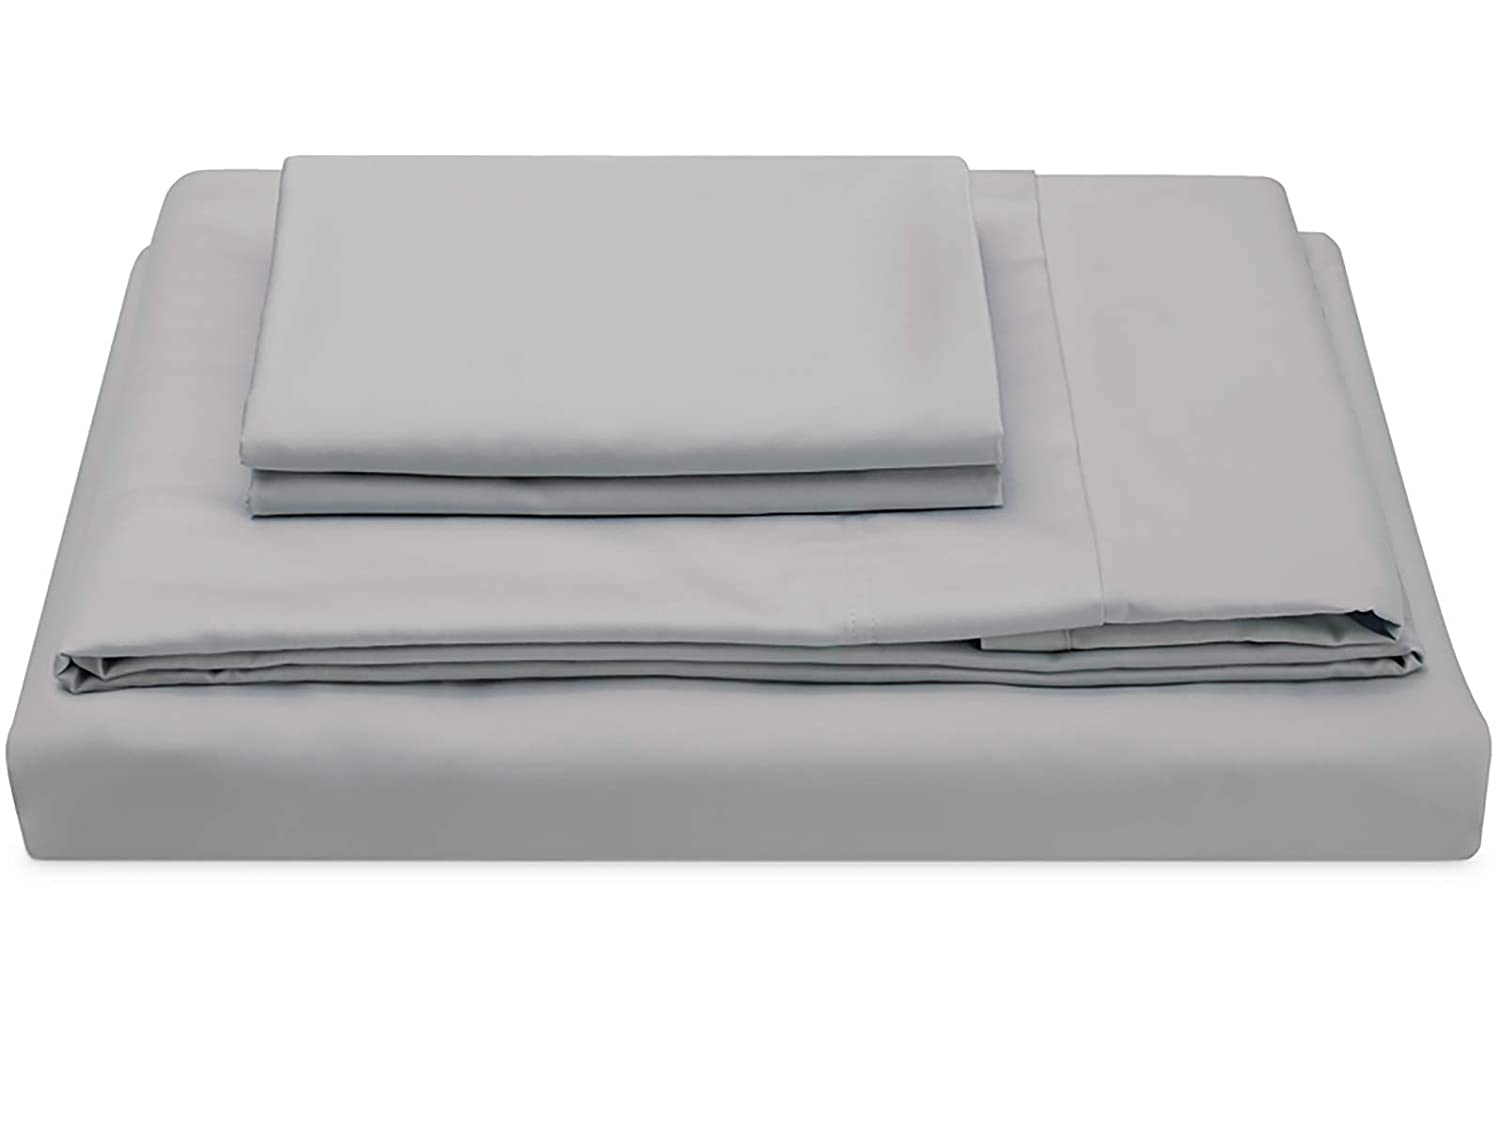 Molecule Luxury Bed Sheets Set Sateen Weave Made with Cotton and Tencel Blended Breathable Fabric for a Cooling, Silky Feel